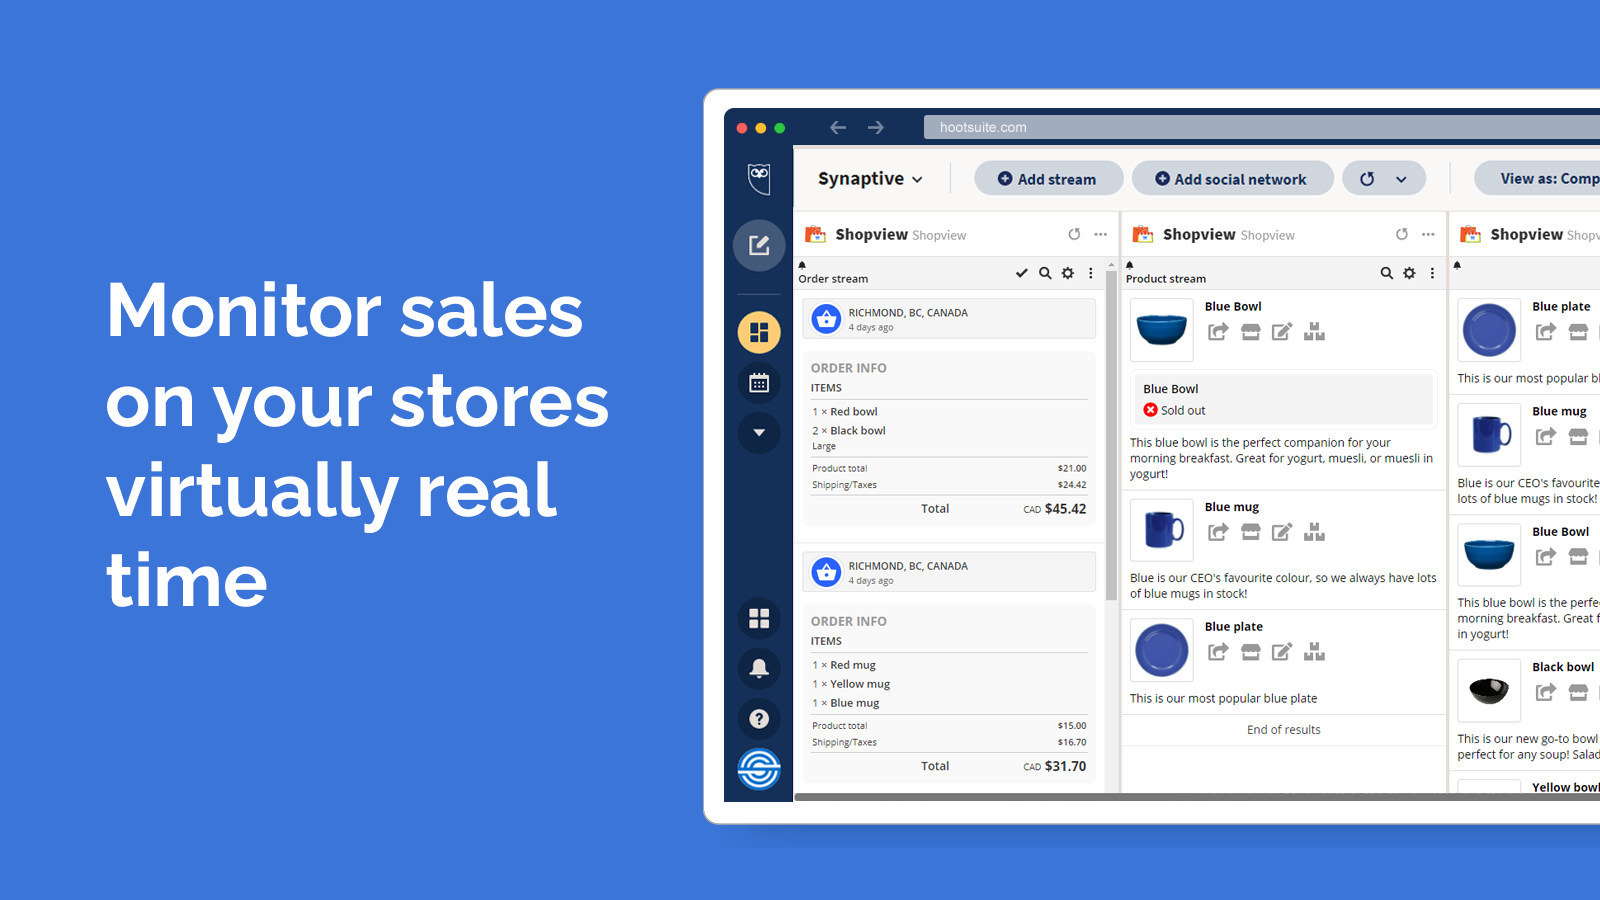 Monitor your store for new sales real-time